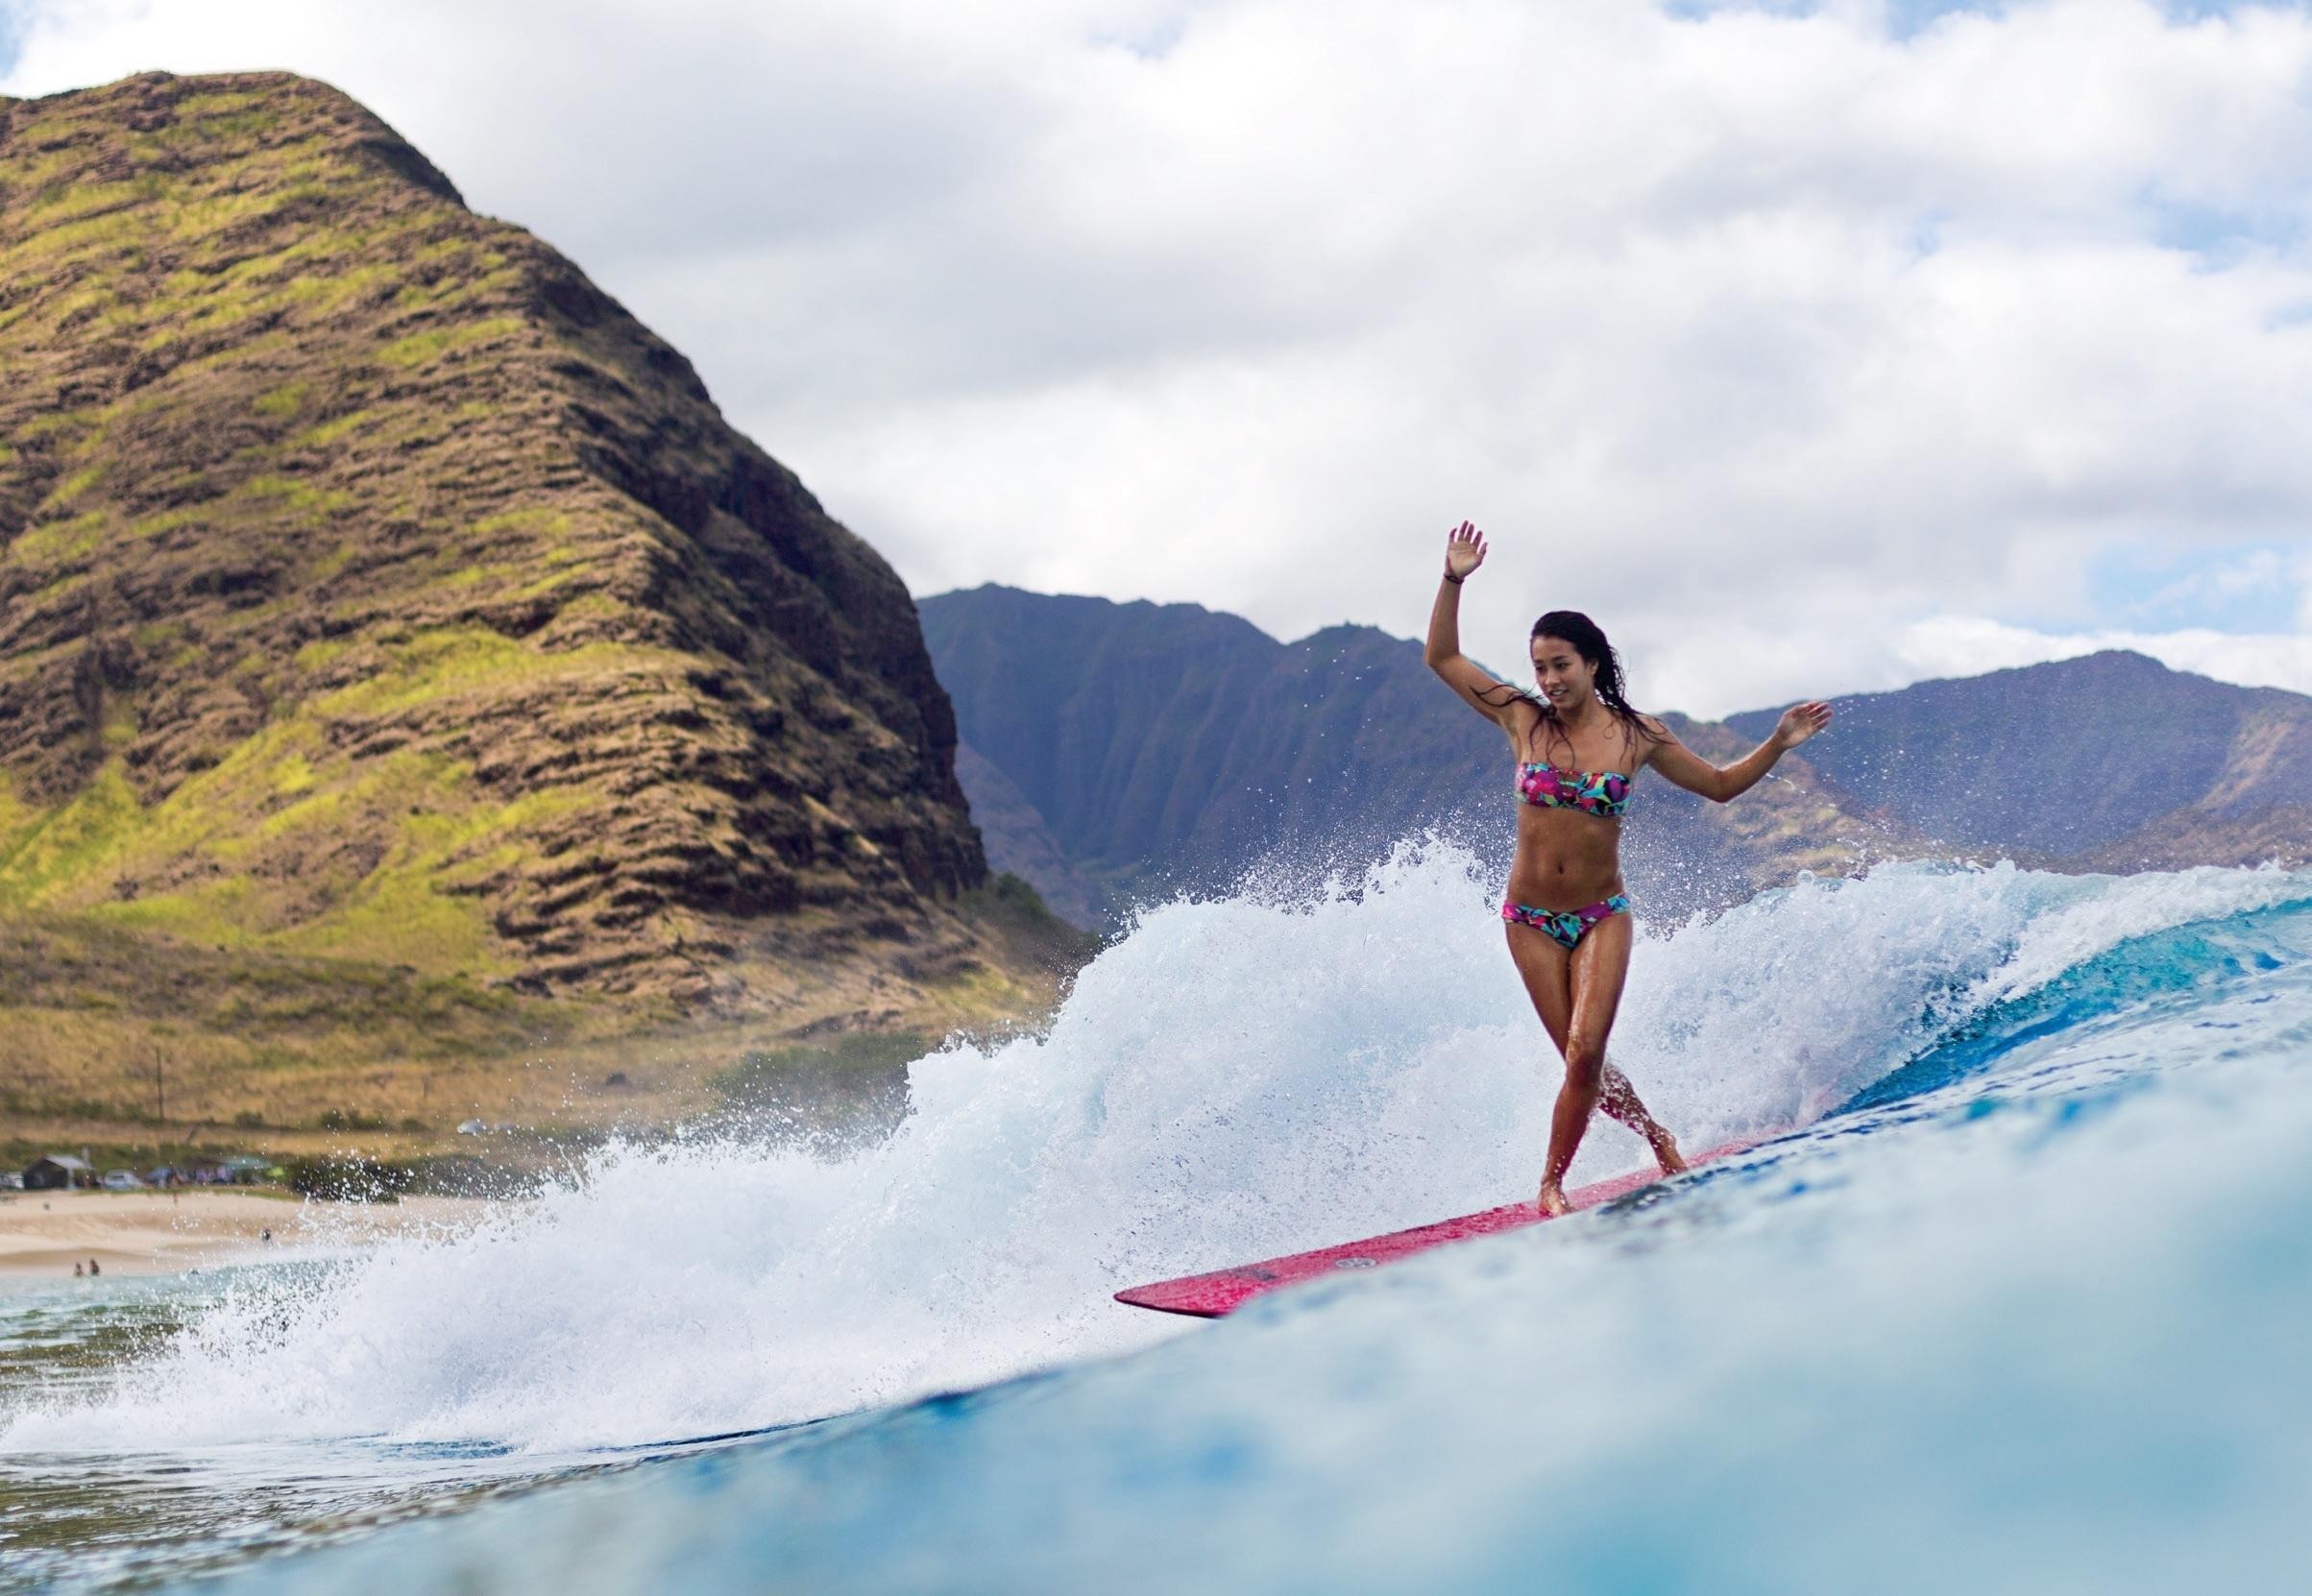 Surf Spots. Our list of local surf spots will help you out on your arrival in Miyazaki. A host to many competitions, beautiful beach breaks with jaw dropping scenery, wild reef breaks, river mouths and not to mention the incredible mountain scenery as you look back from the water.